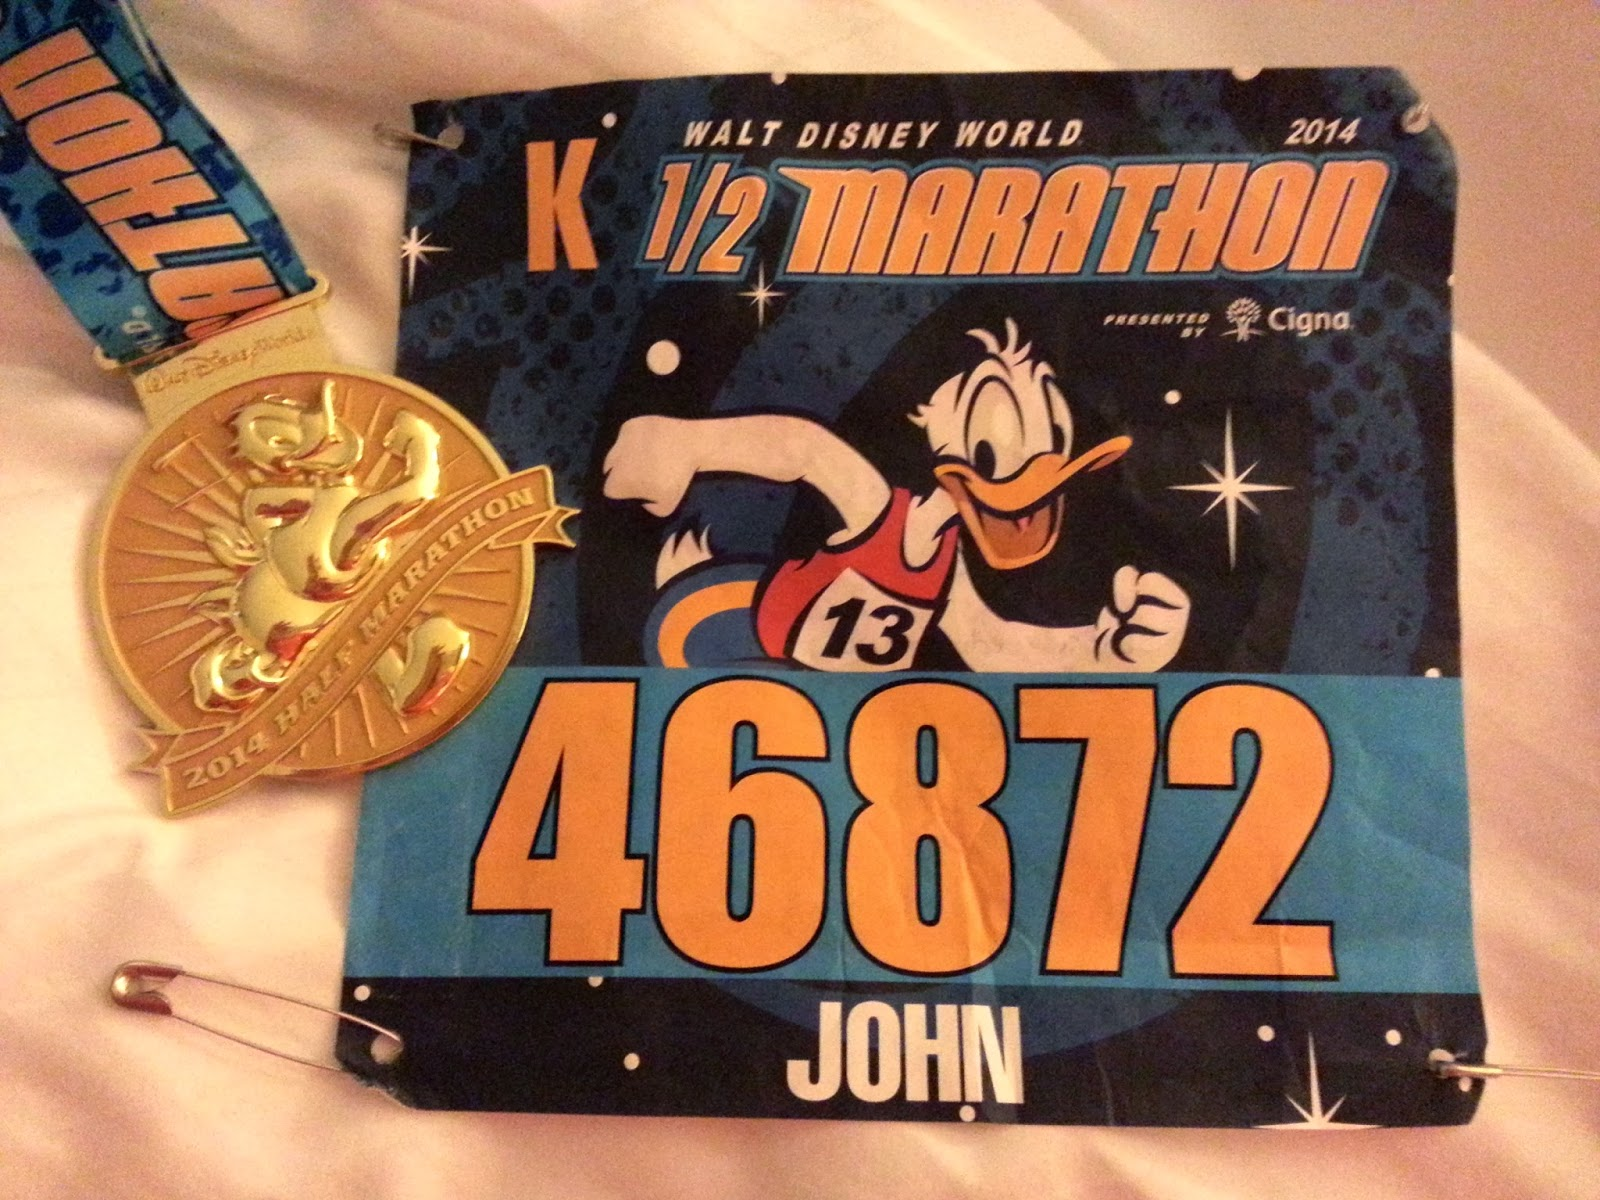 WDW 1/2 Marathon bib and medal